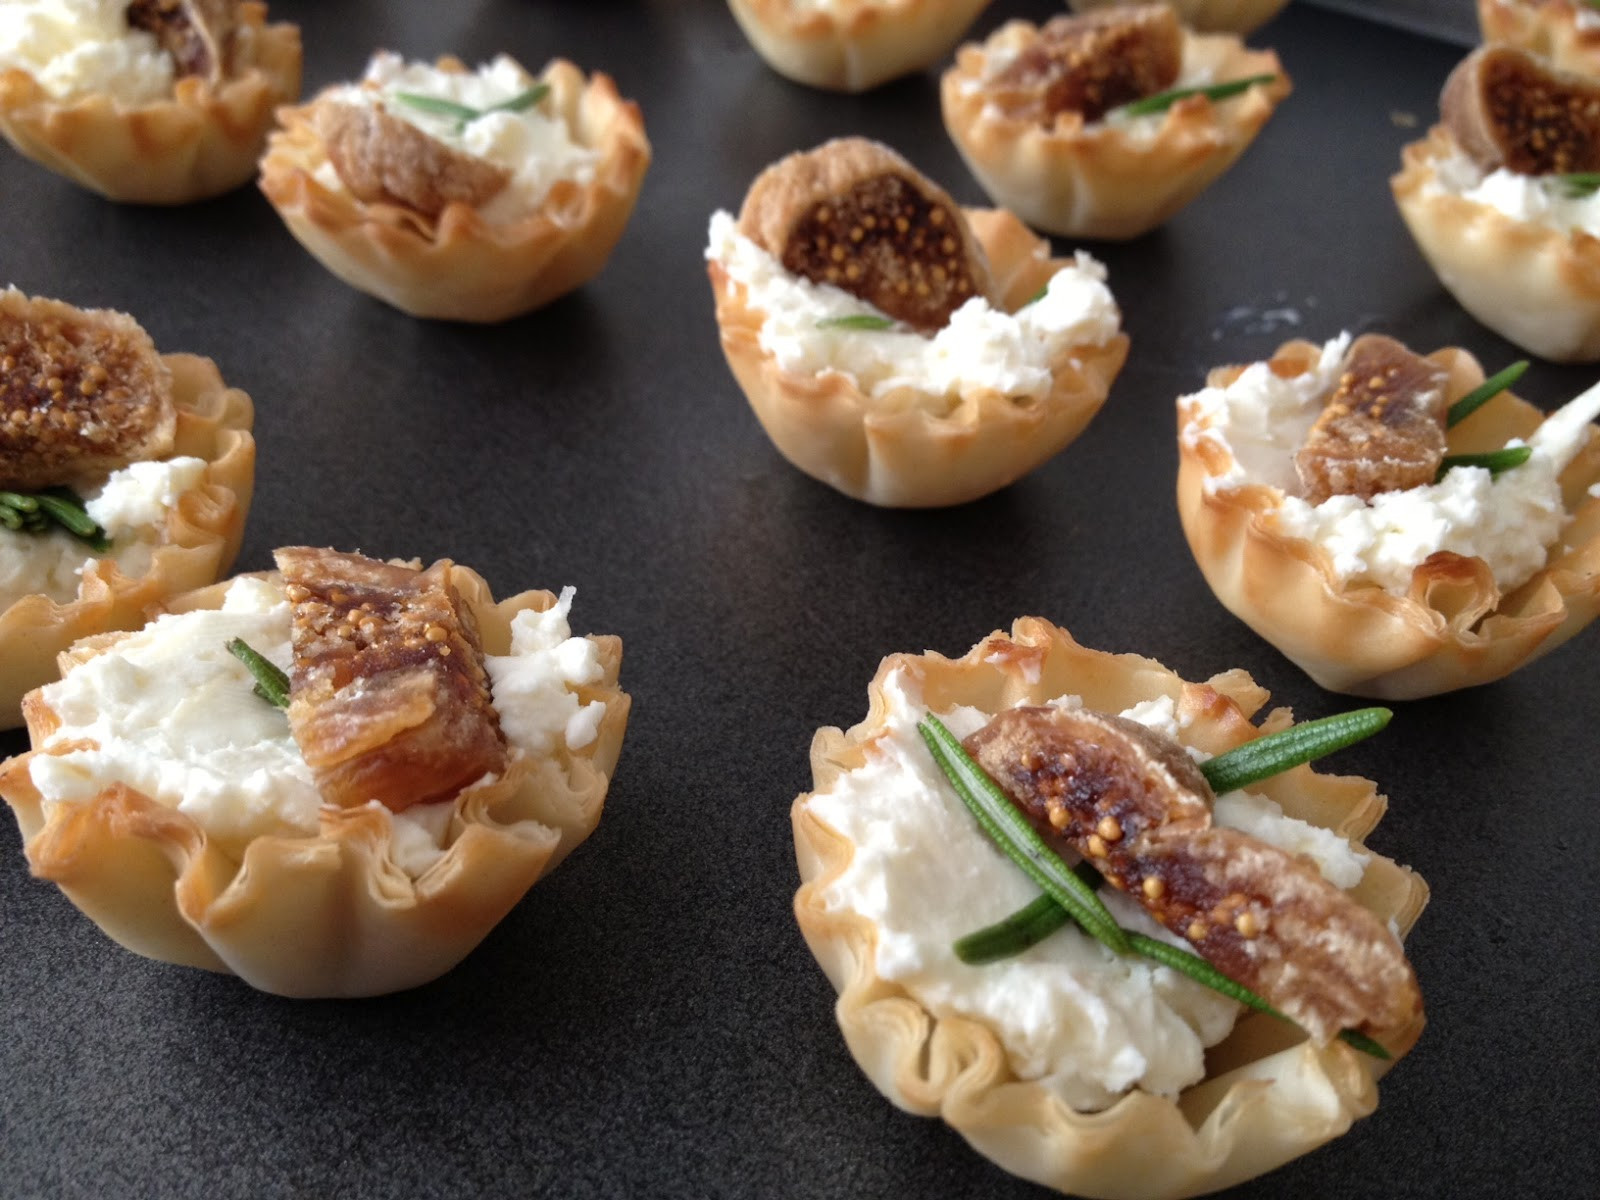 Healthy Fall Appetizers  The Full Plate Blog re purposing leftovers amazing Fall